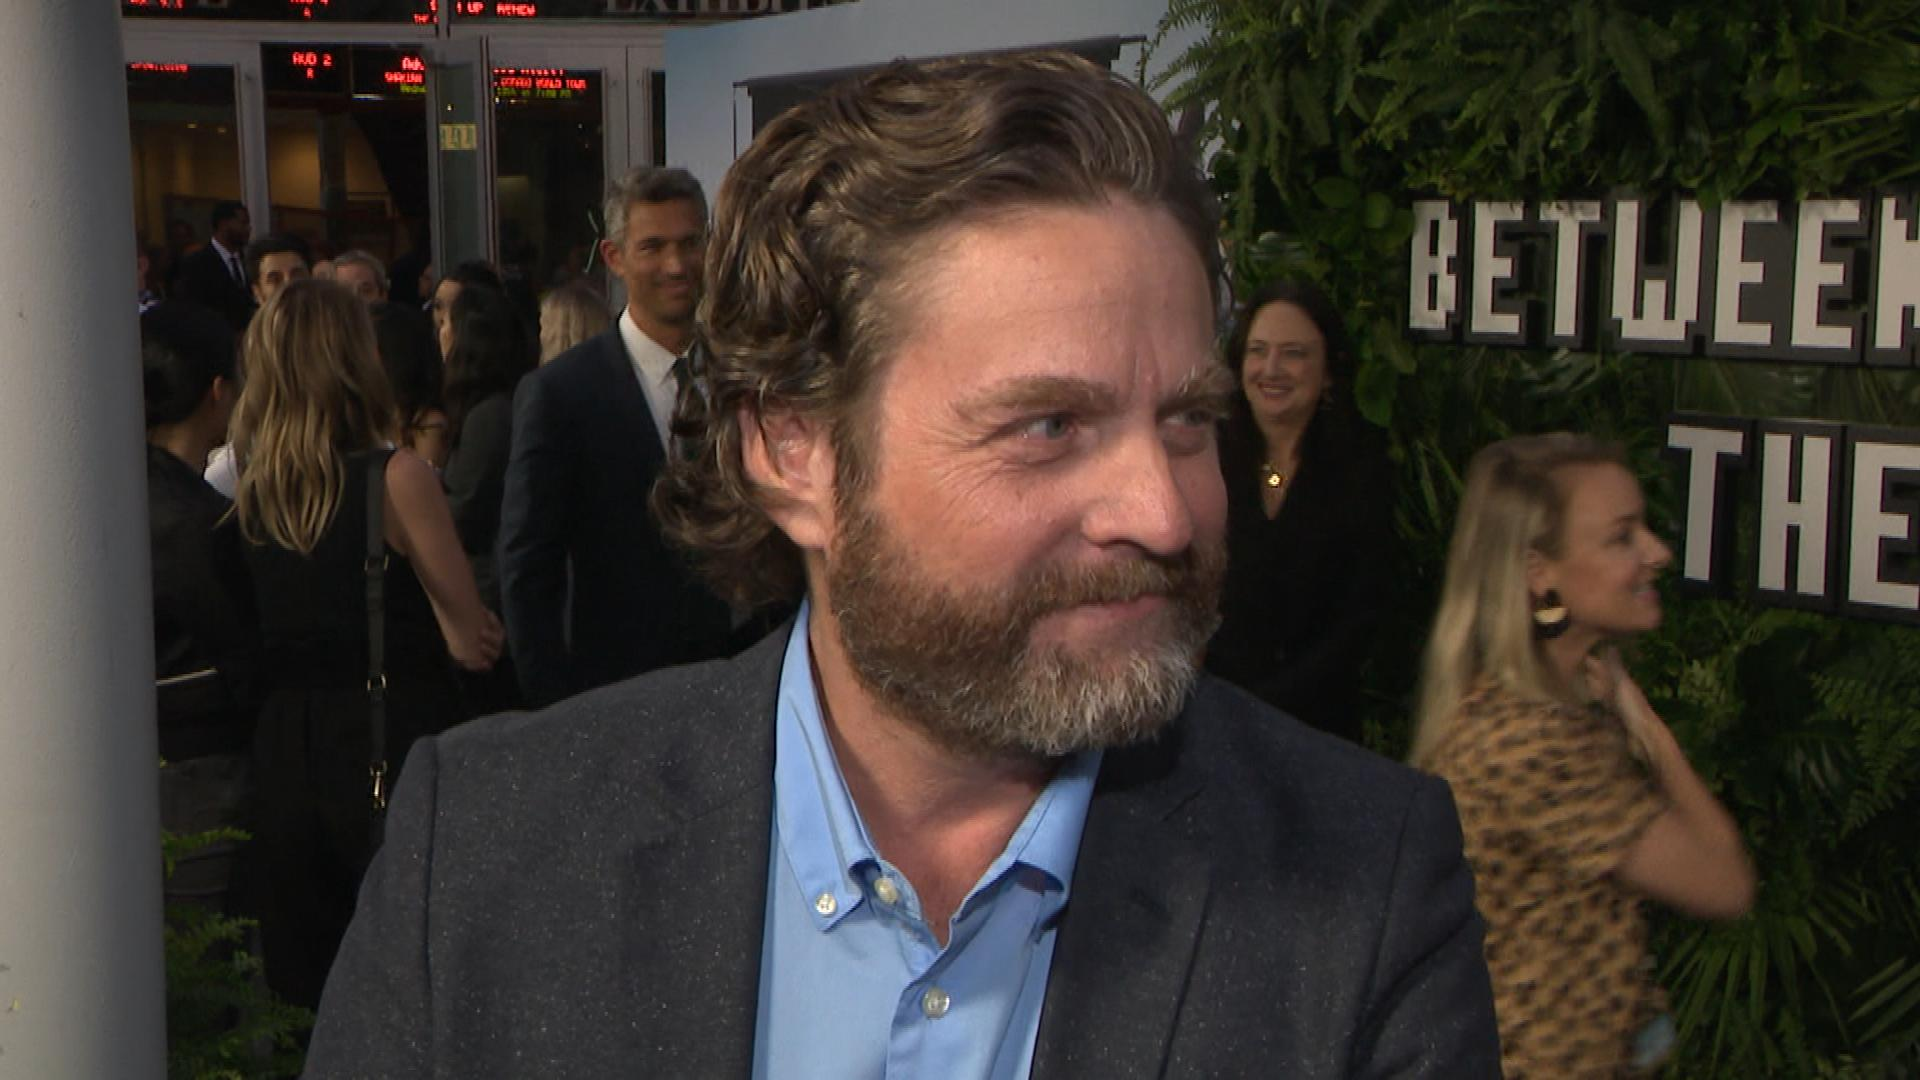 Zach Galifianakis Eats Cake While Discussing 'Between Two Ferns: The Movie'